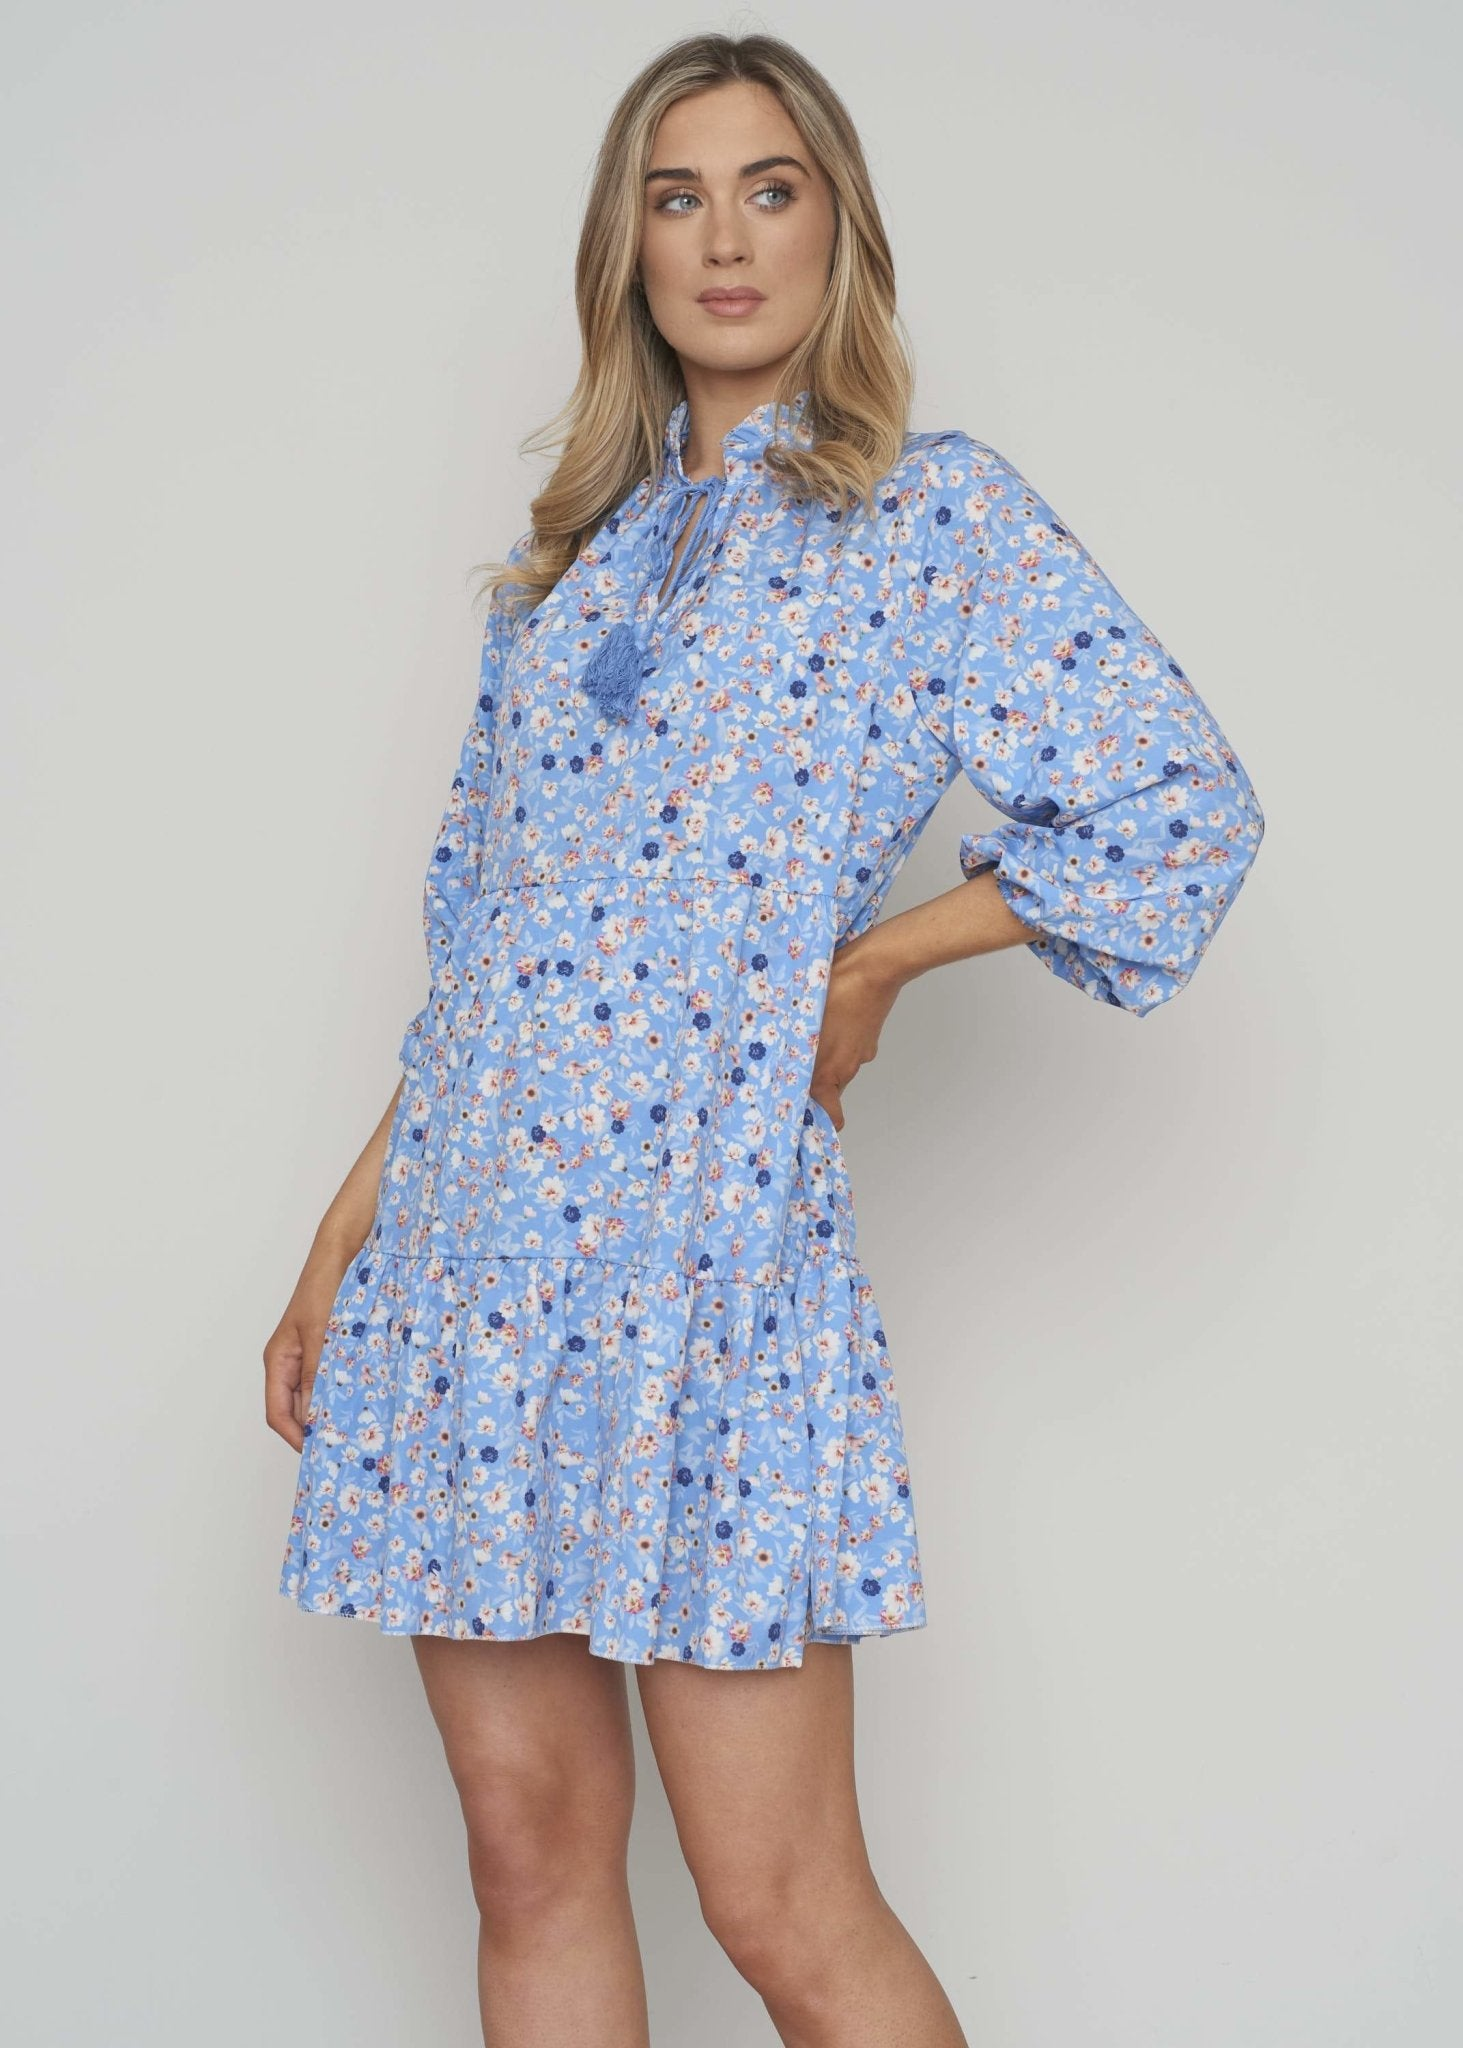 Priya Tiered Dress In Blue Floral - The Walk in Wardrobe